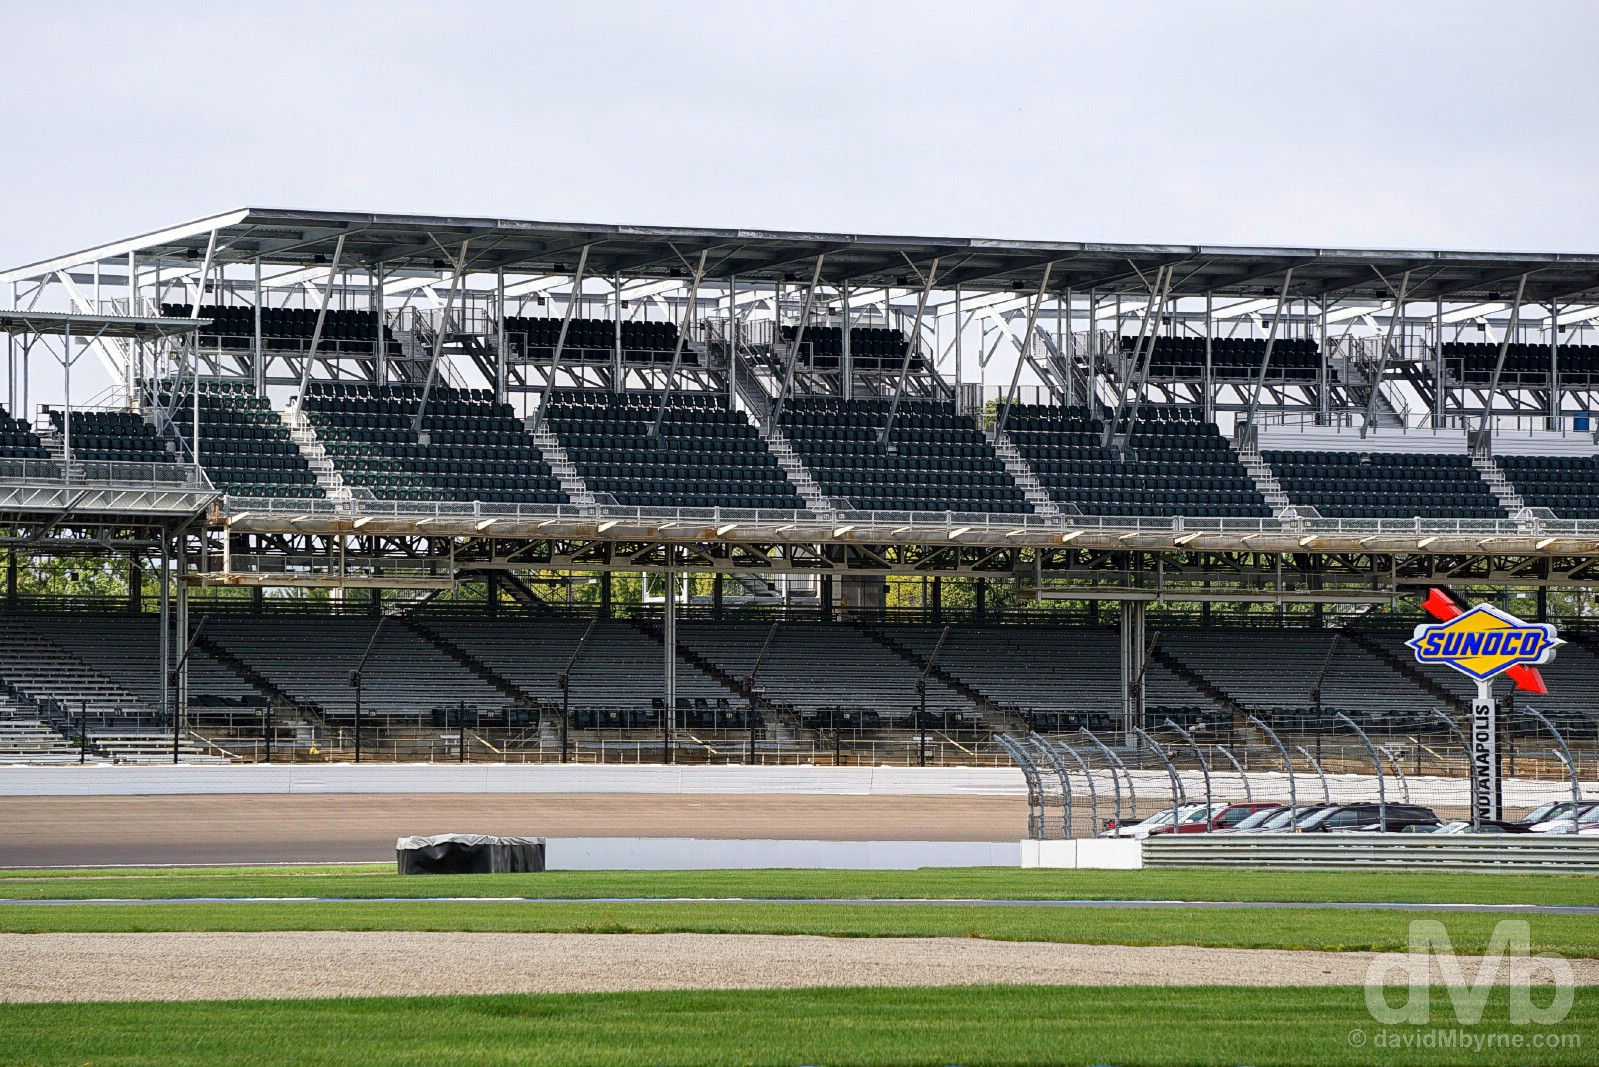 A portion of the 2.5-mile-long track and grandstands lining the Indianapolis Motor Speedway in Indianapolis, Indiana, USA. September 29, 2016.